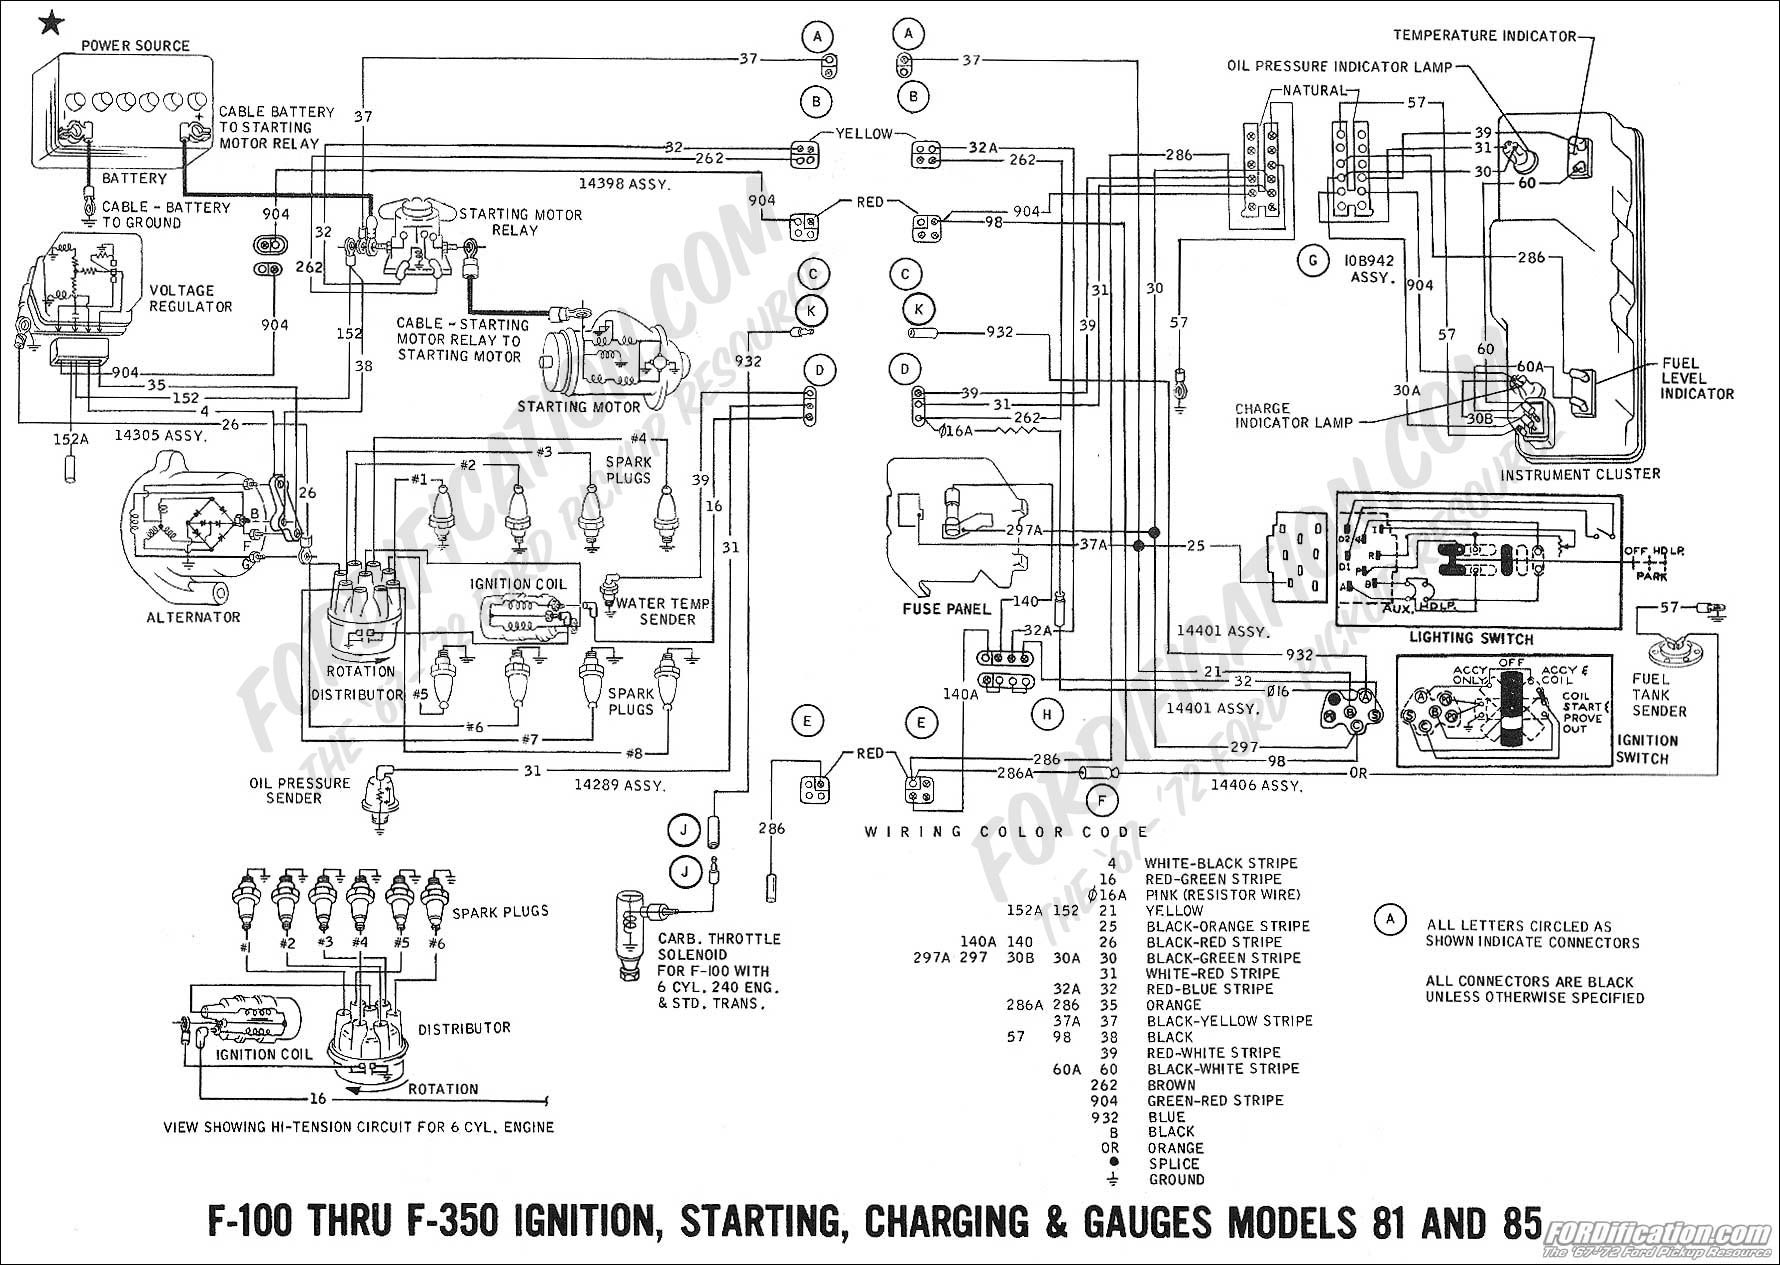 ford f150 wiring harness diagram mercedes sprinter ignition switch 1979 f 150